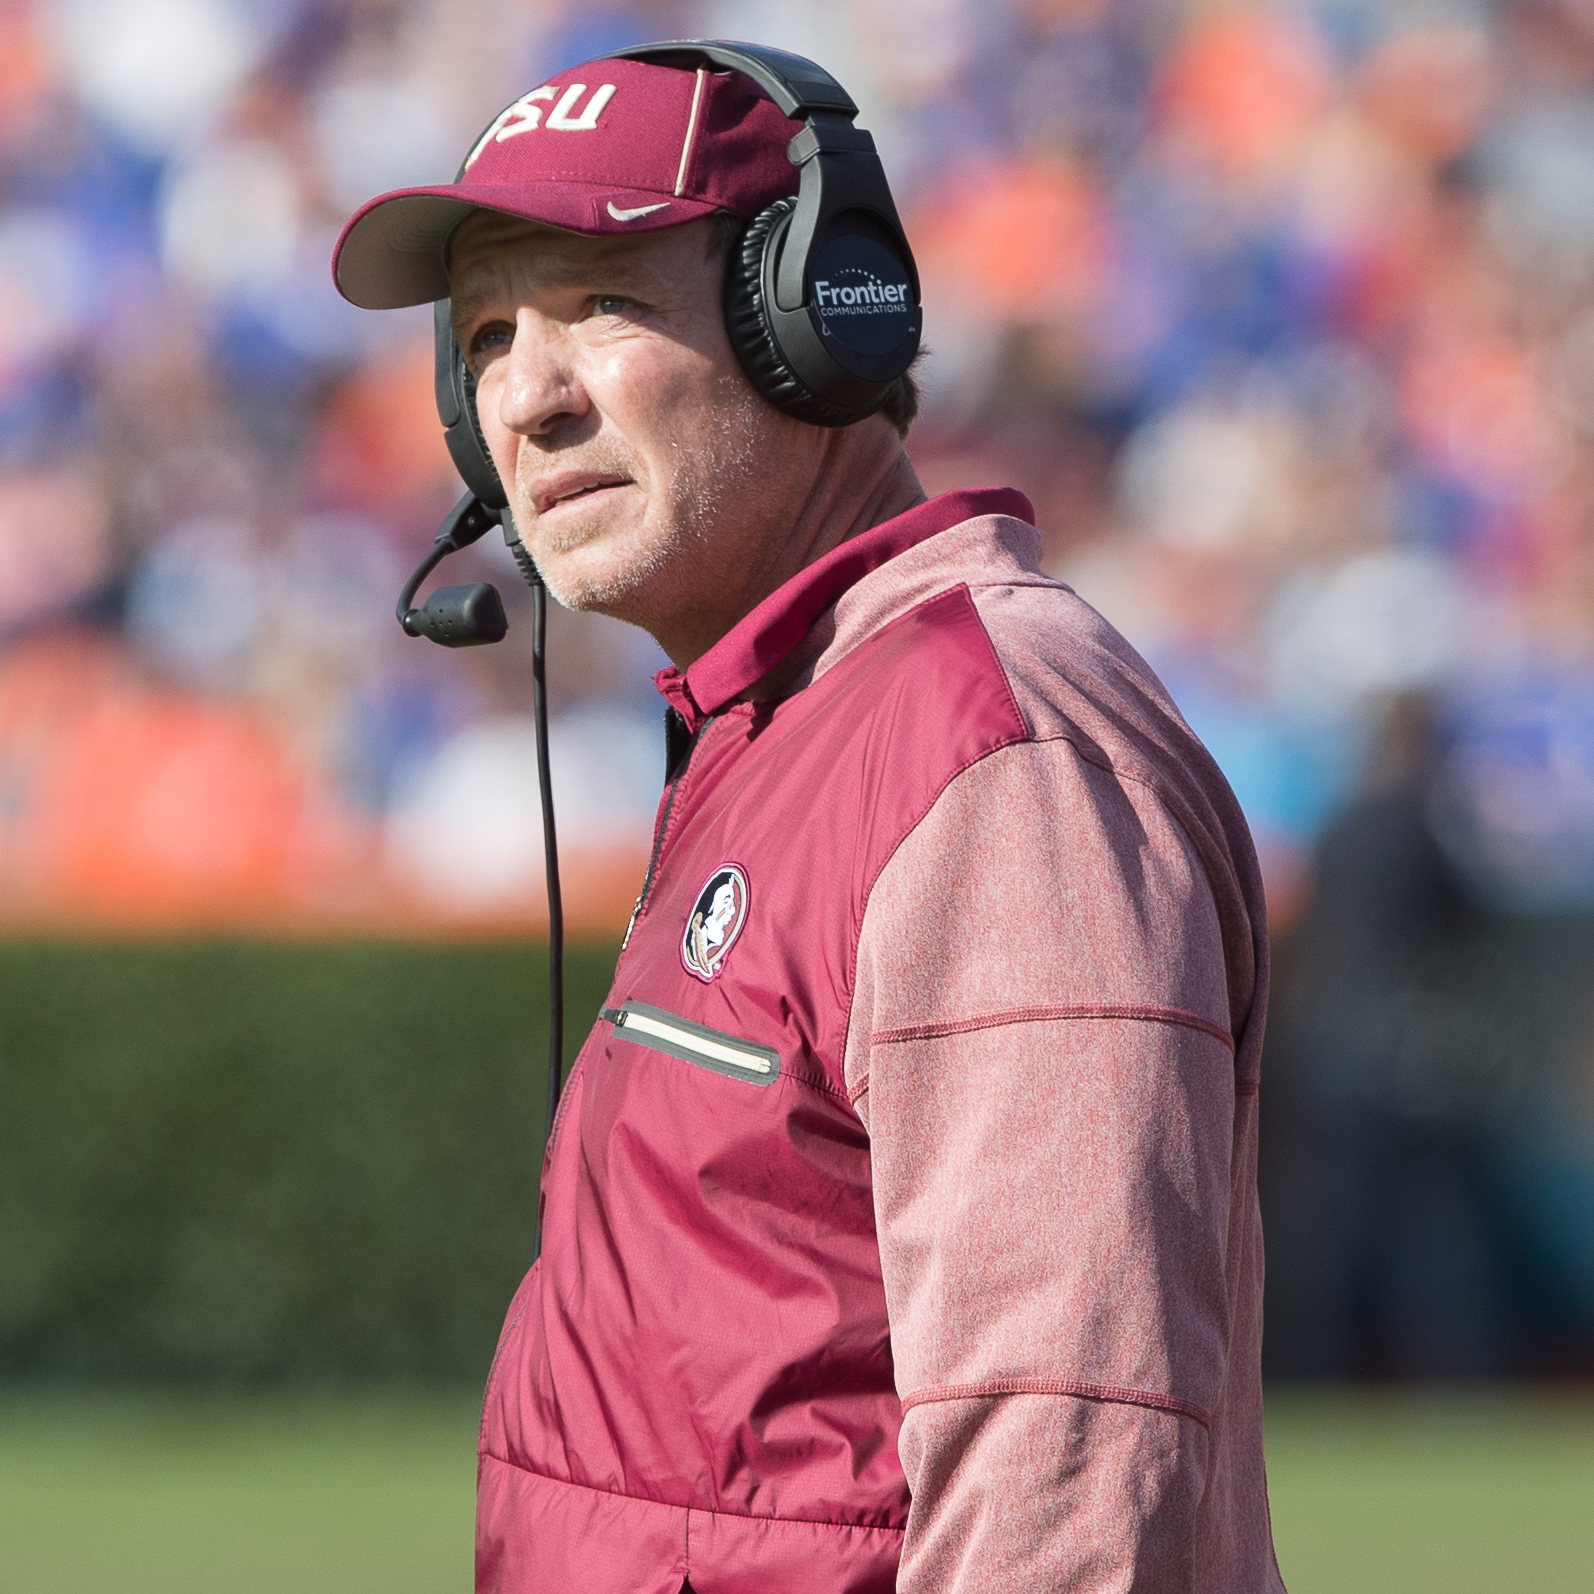 FSU fans are unlikely to pull for Fisher./STEVEN MUNCIE